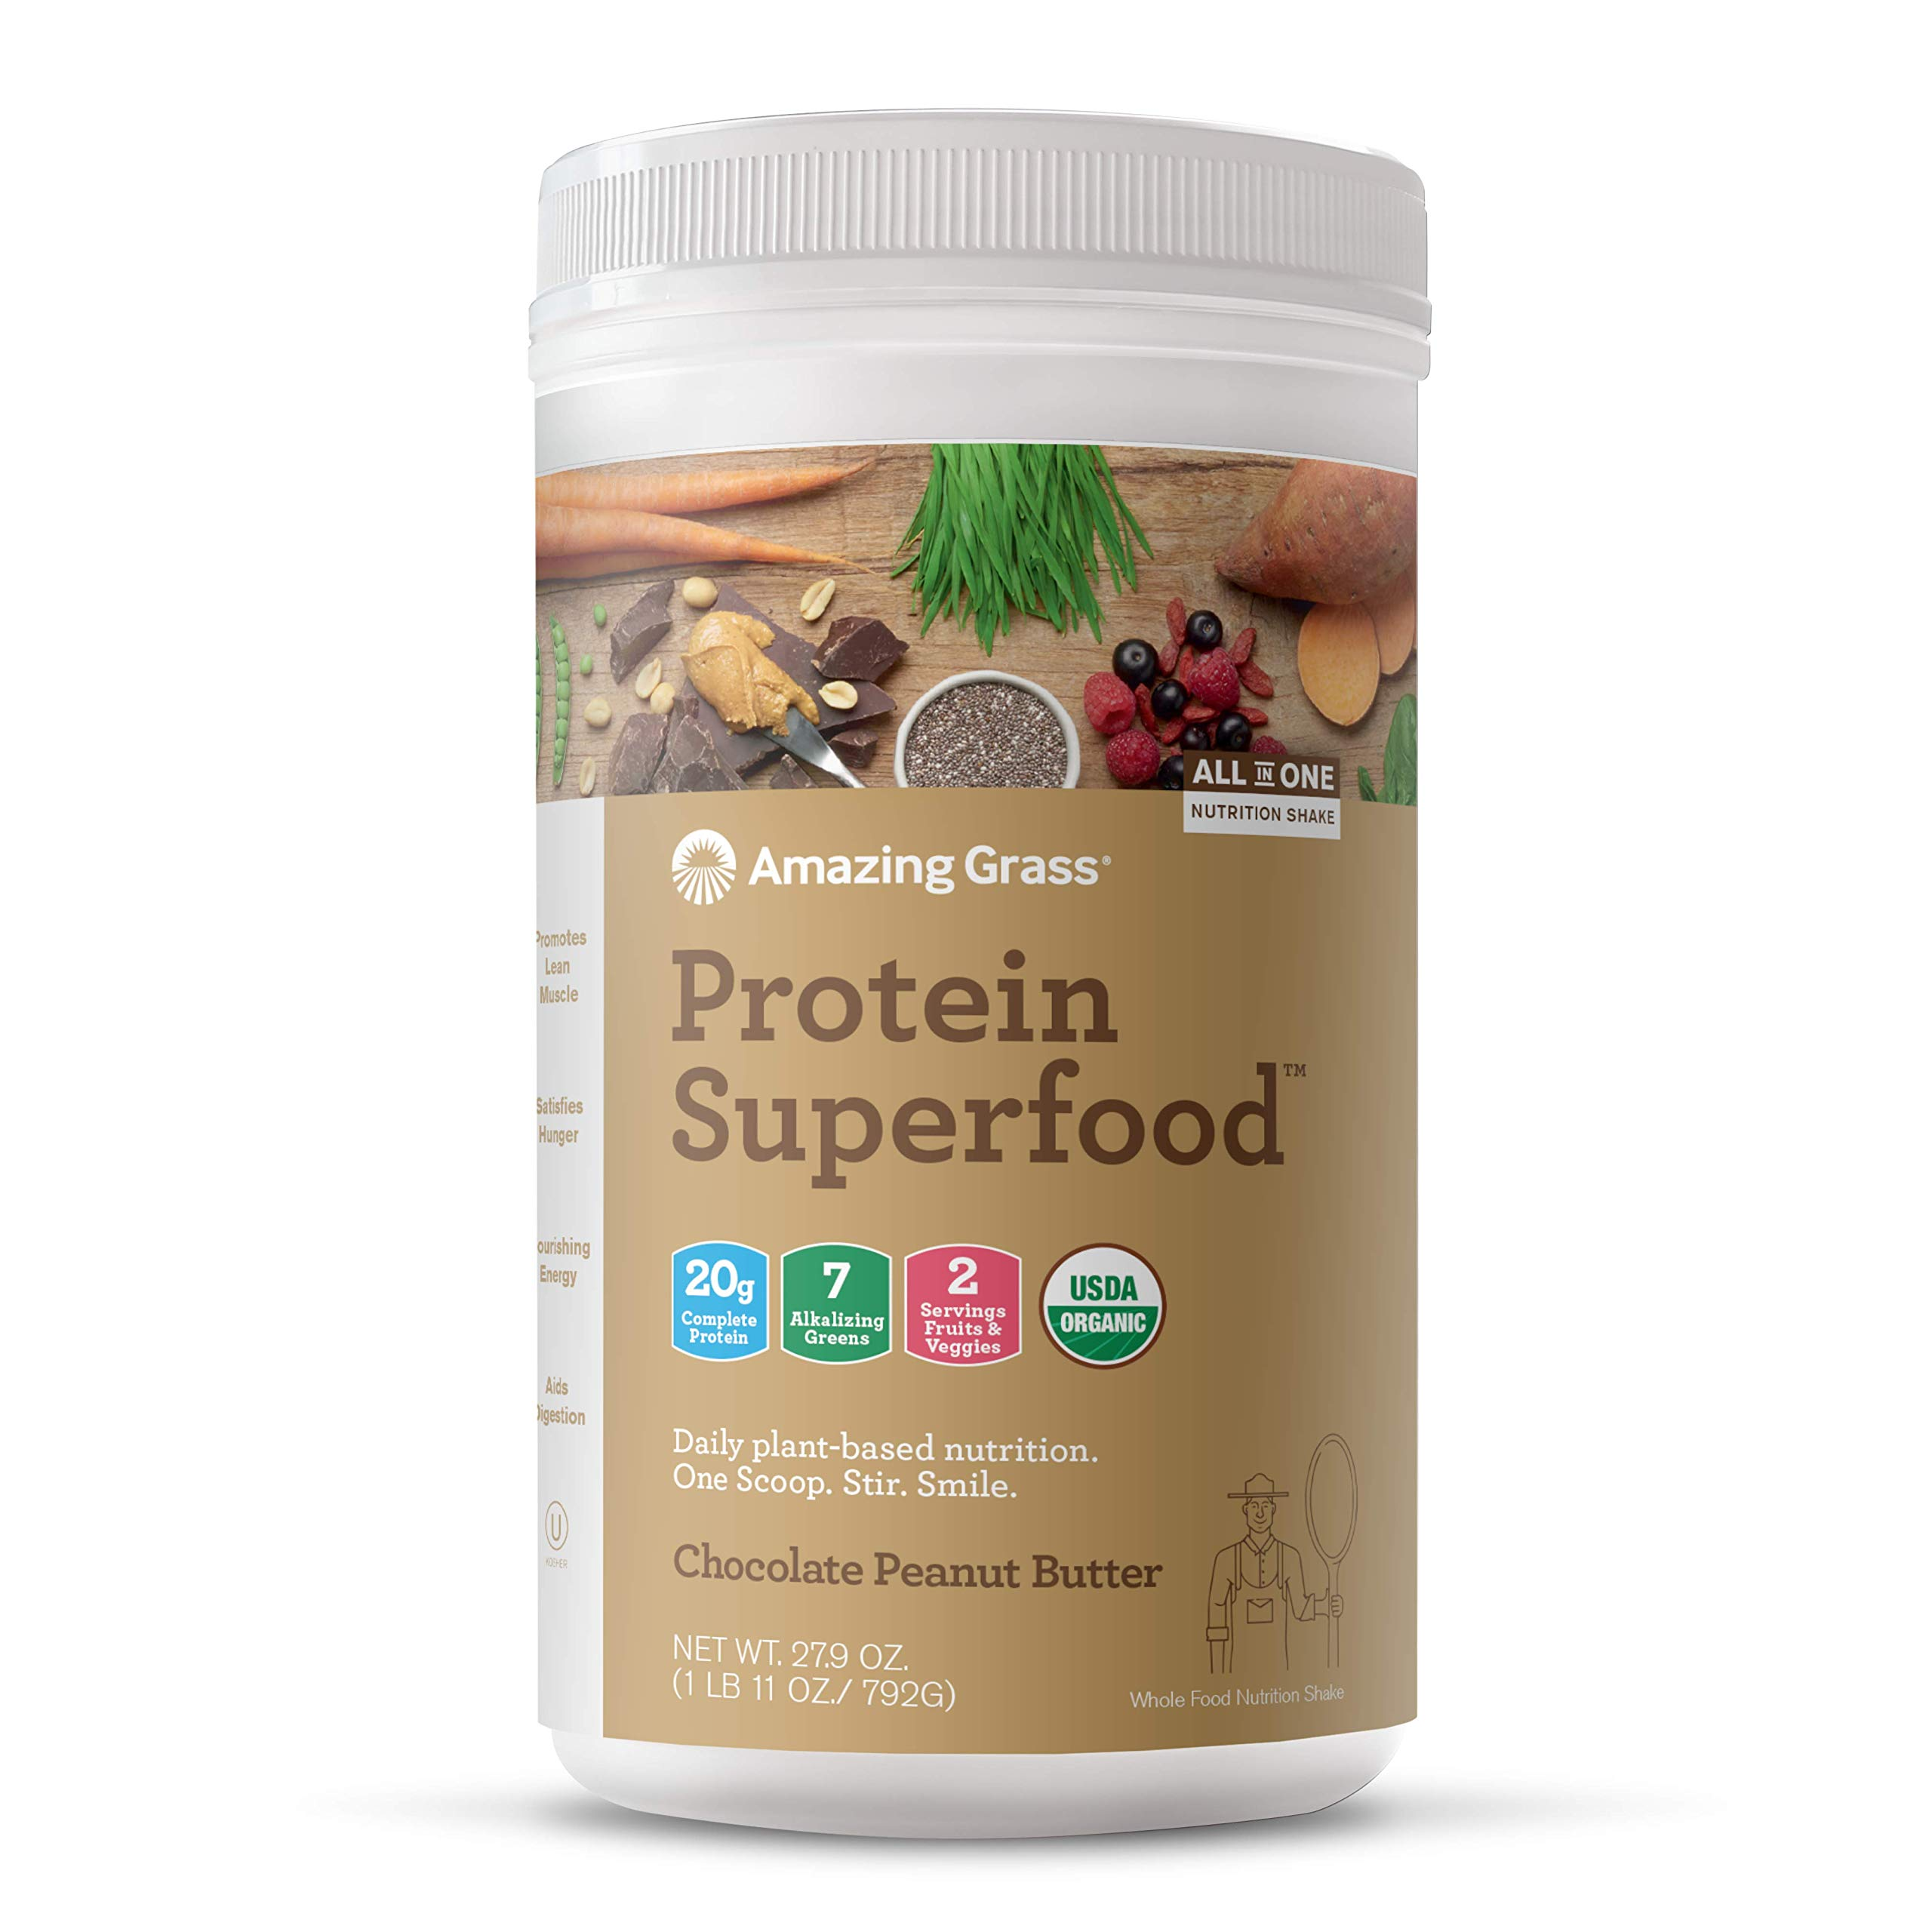 Amazing Grass Protein Superfood: Organic Vegan Protein Powder, Plant Based Meal Replacement Shake with 2 servings of Fruits and Veggies, Chocolate Peanut Butter Flavor, 18 Servings